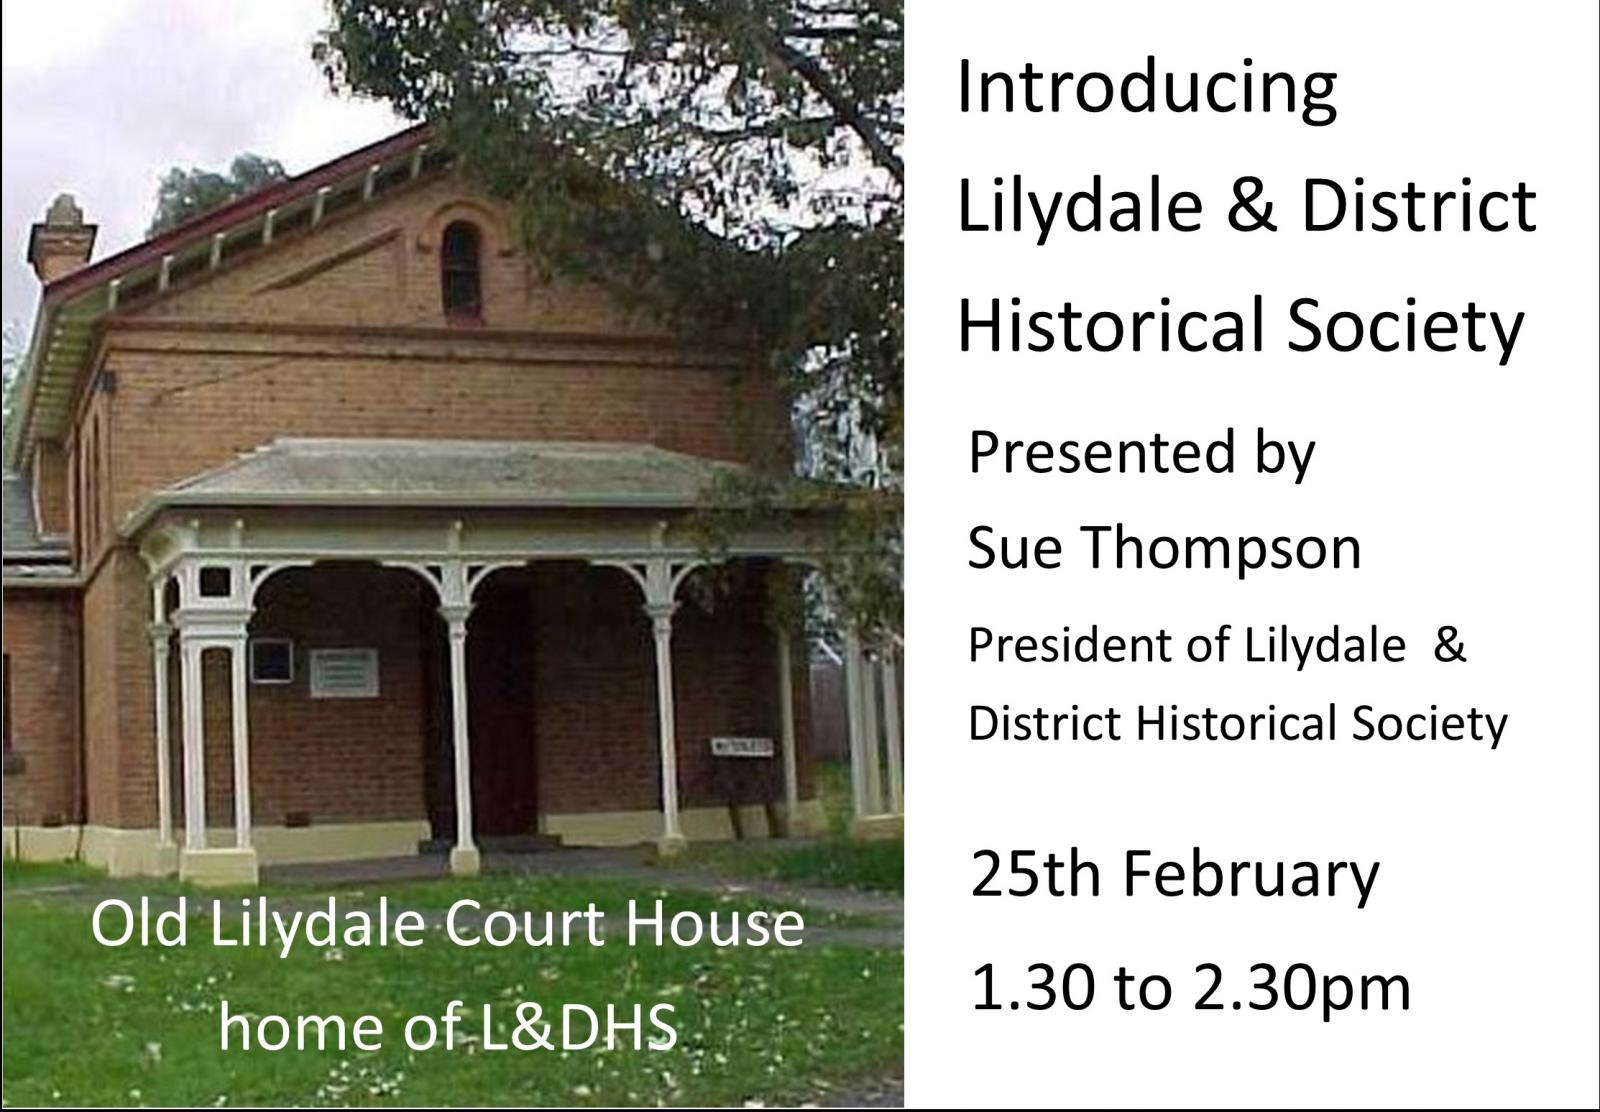 Introducing Lilydale & DHS